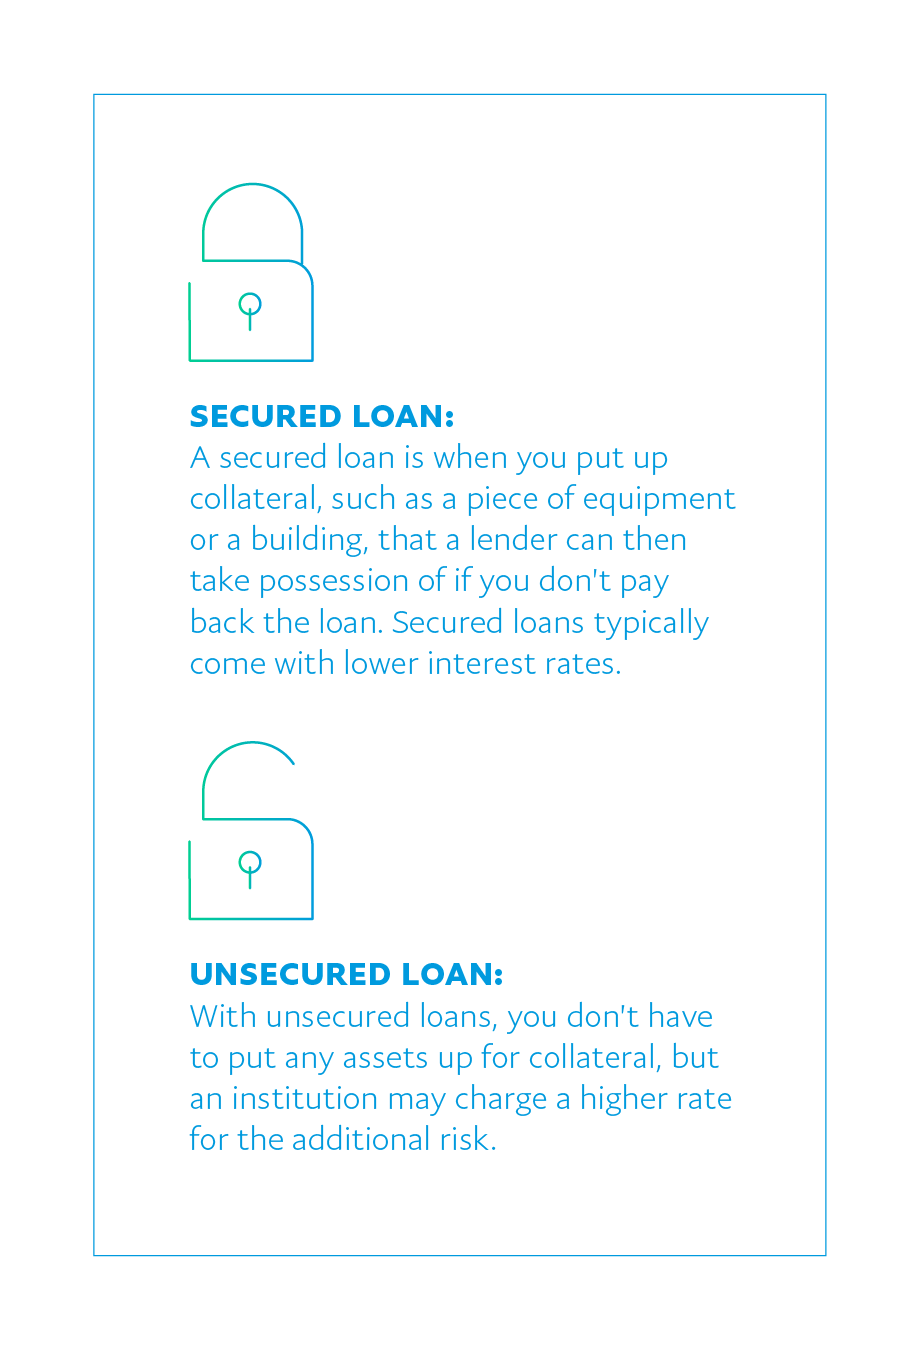 The differences between a secured loan and an unsecured loan.